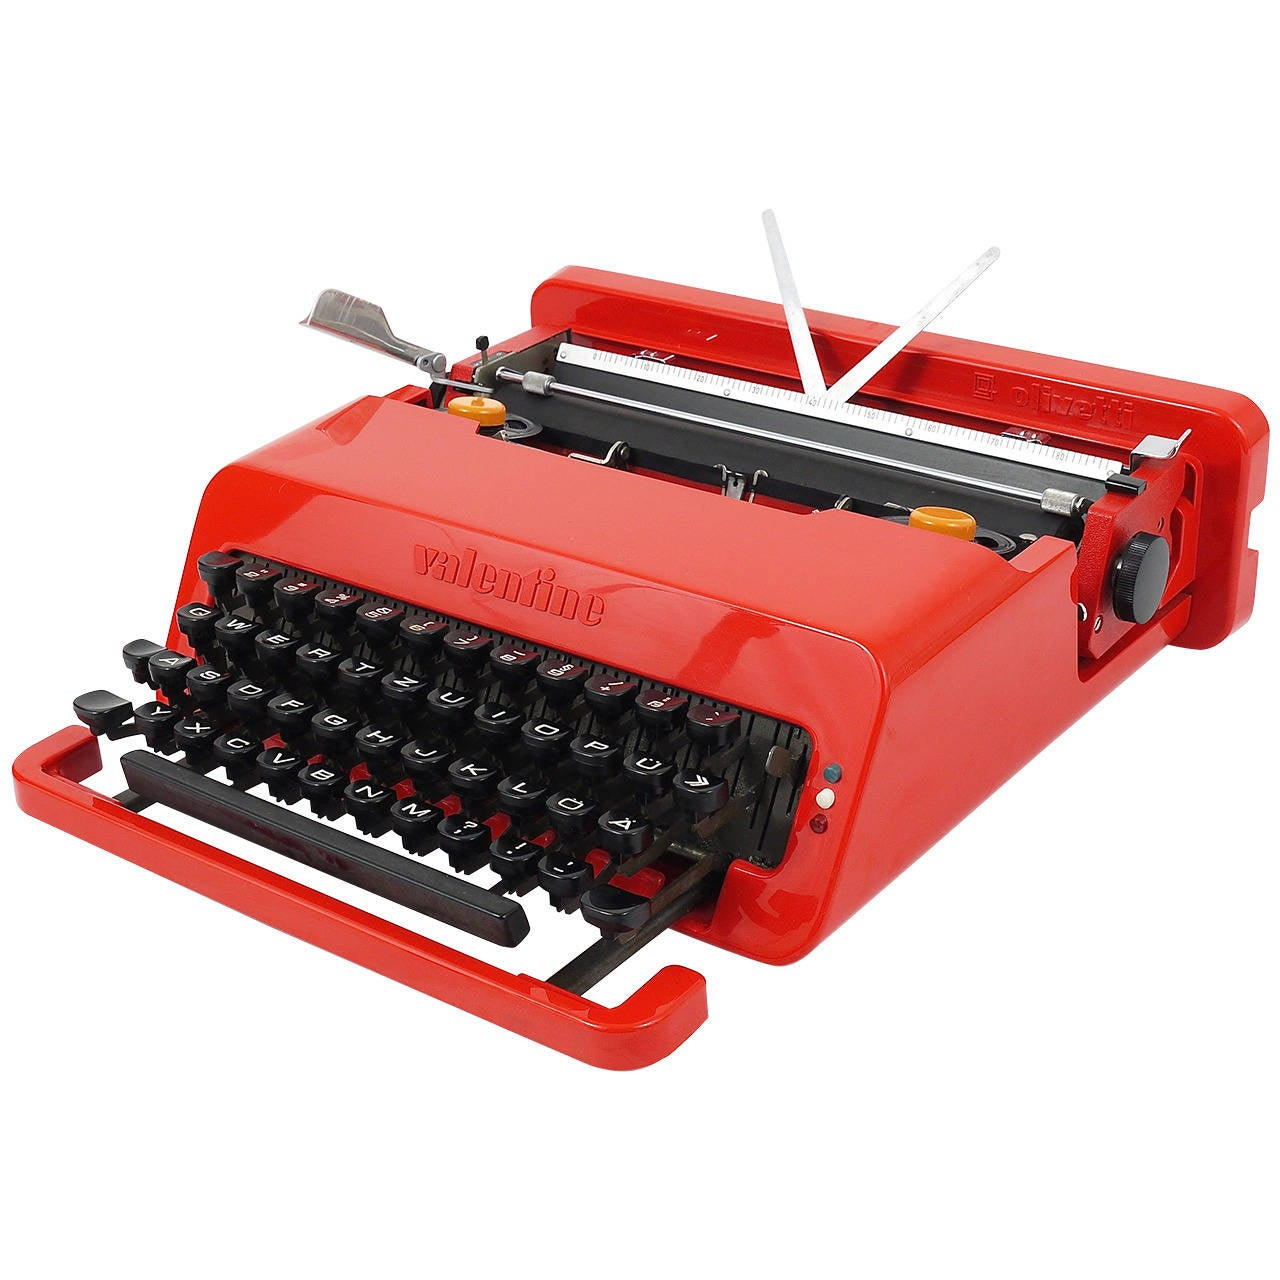 1960s Furniture Valentine Typewriter By Ettore Sottsass And Perry A King